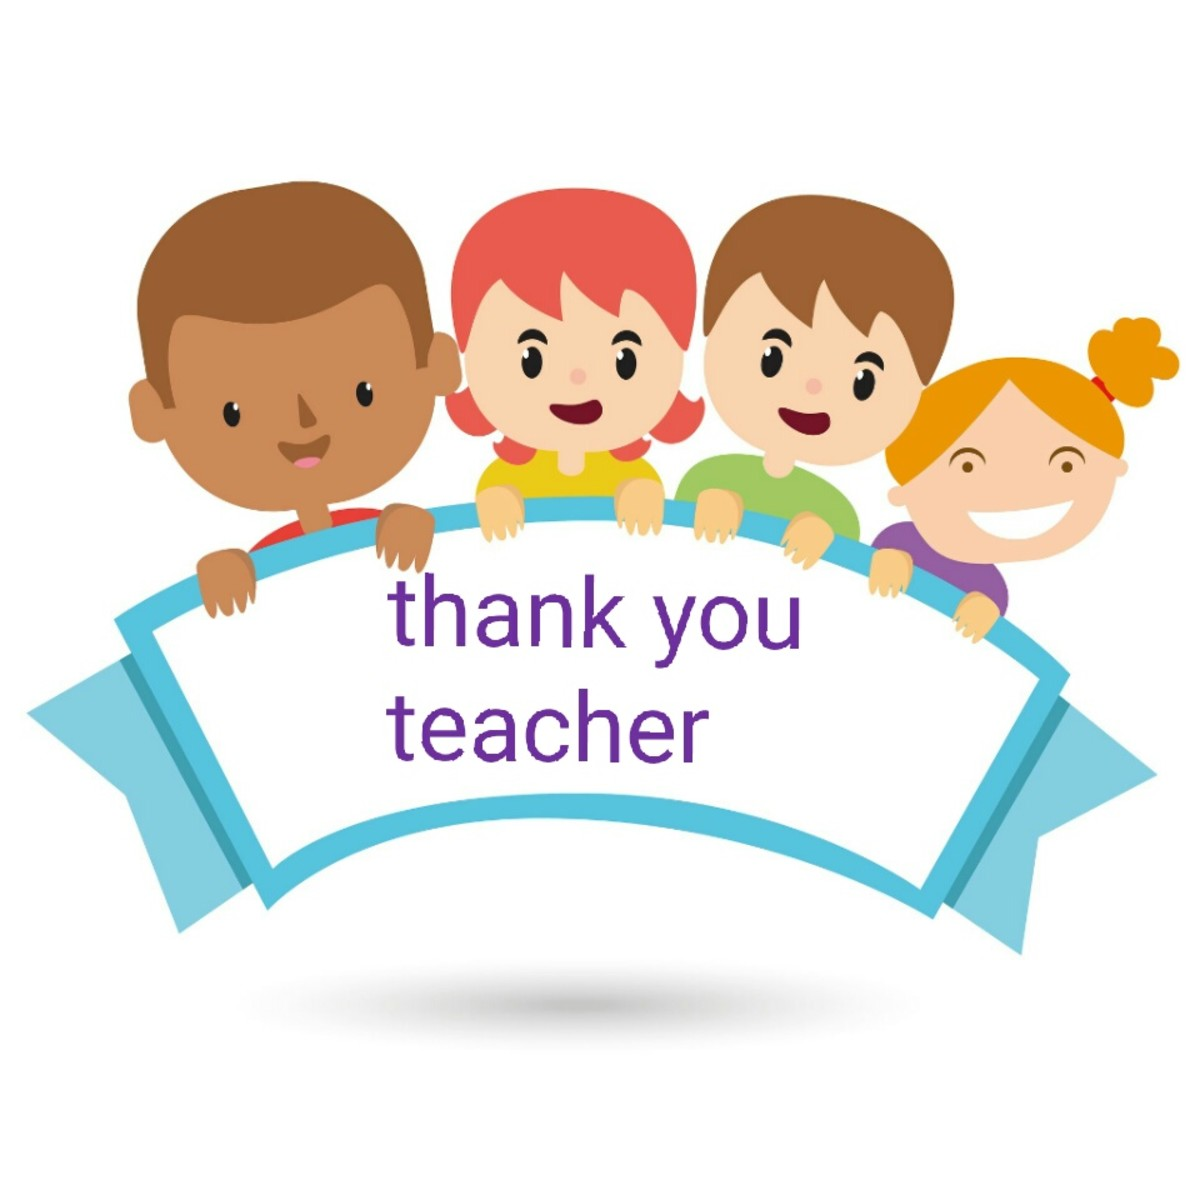 Many parents forget to encourage their children to thank teachers, relatives, and others that help them along.